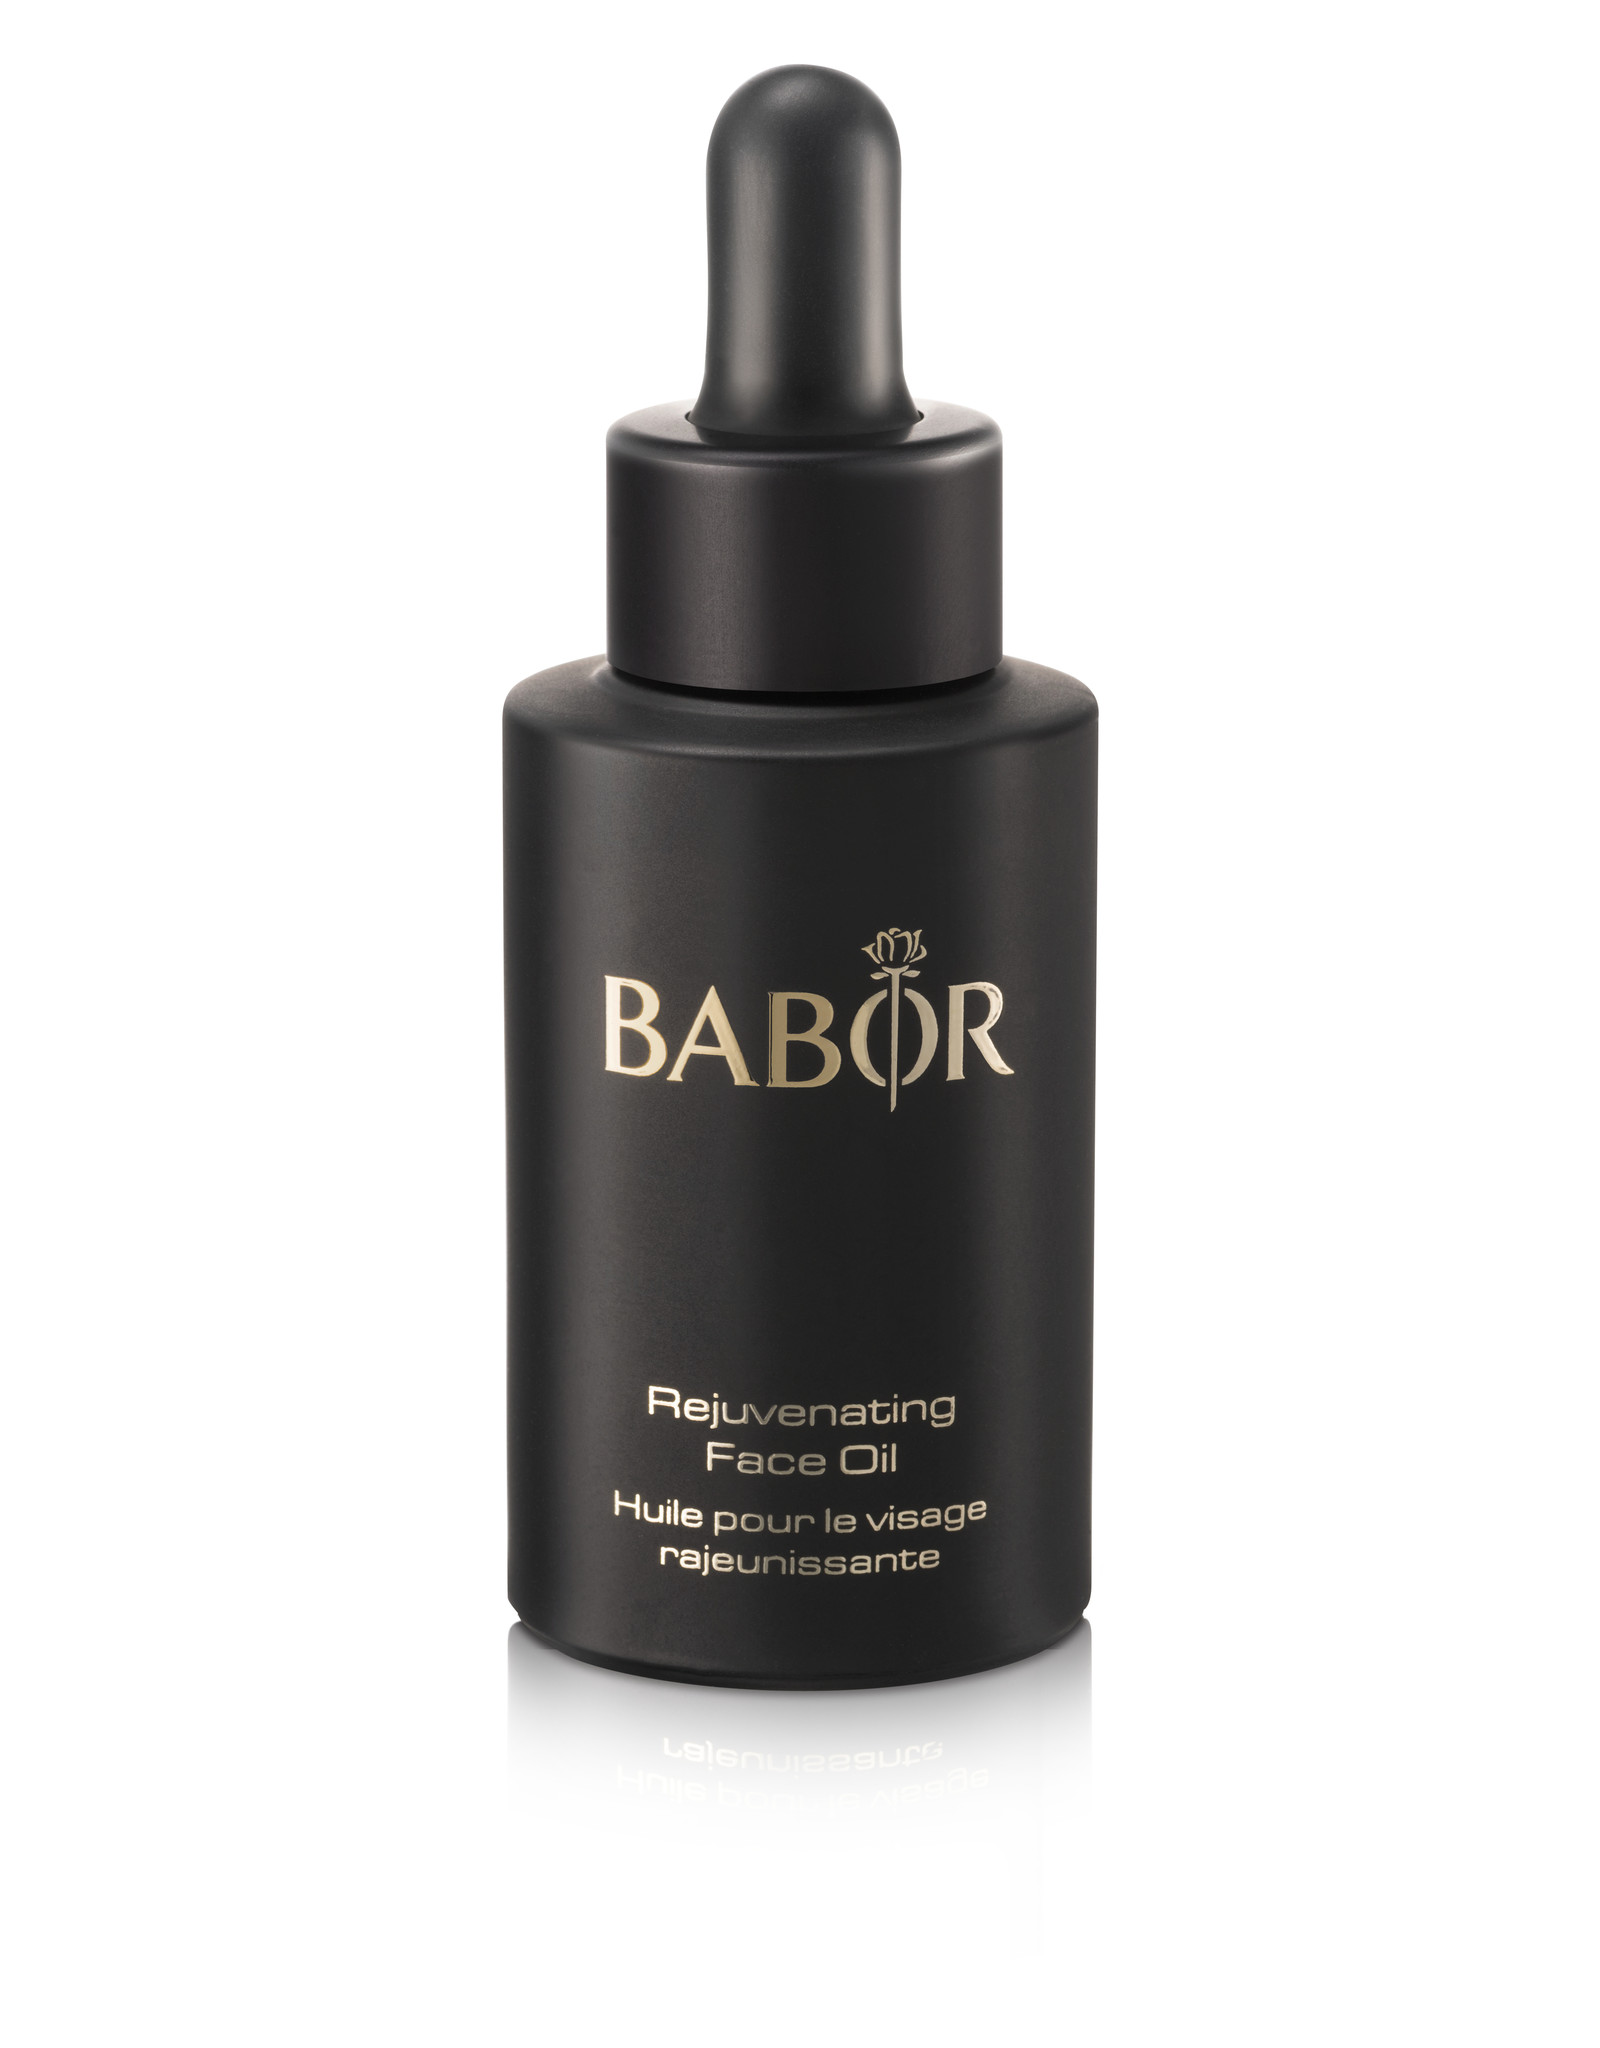 BABOR CLASSICS REJUVENATING FACE OIL, 30 ML